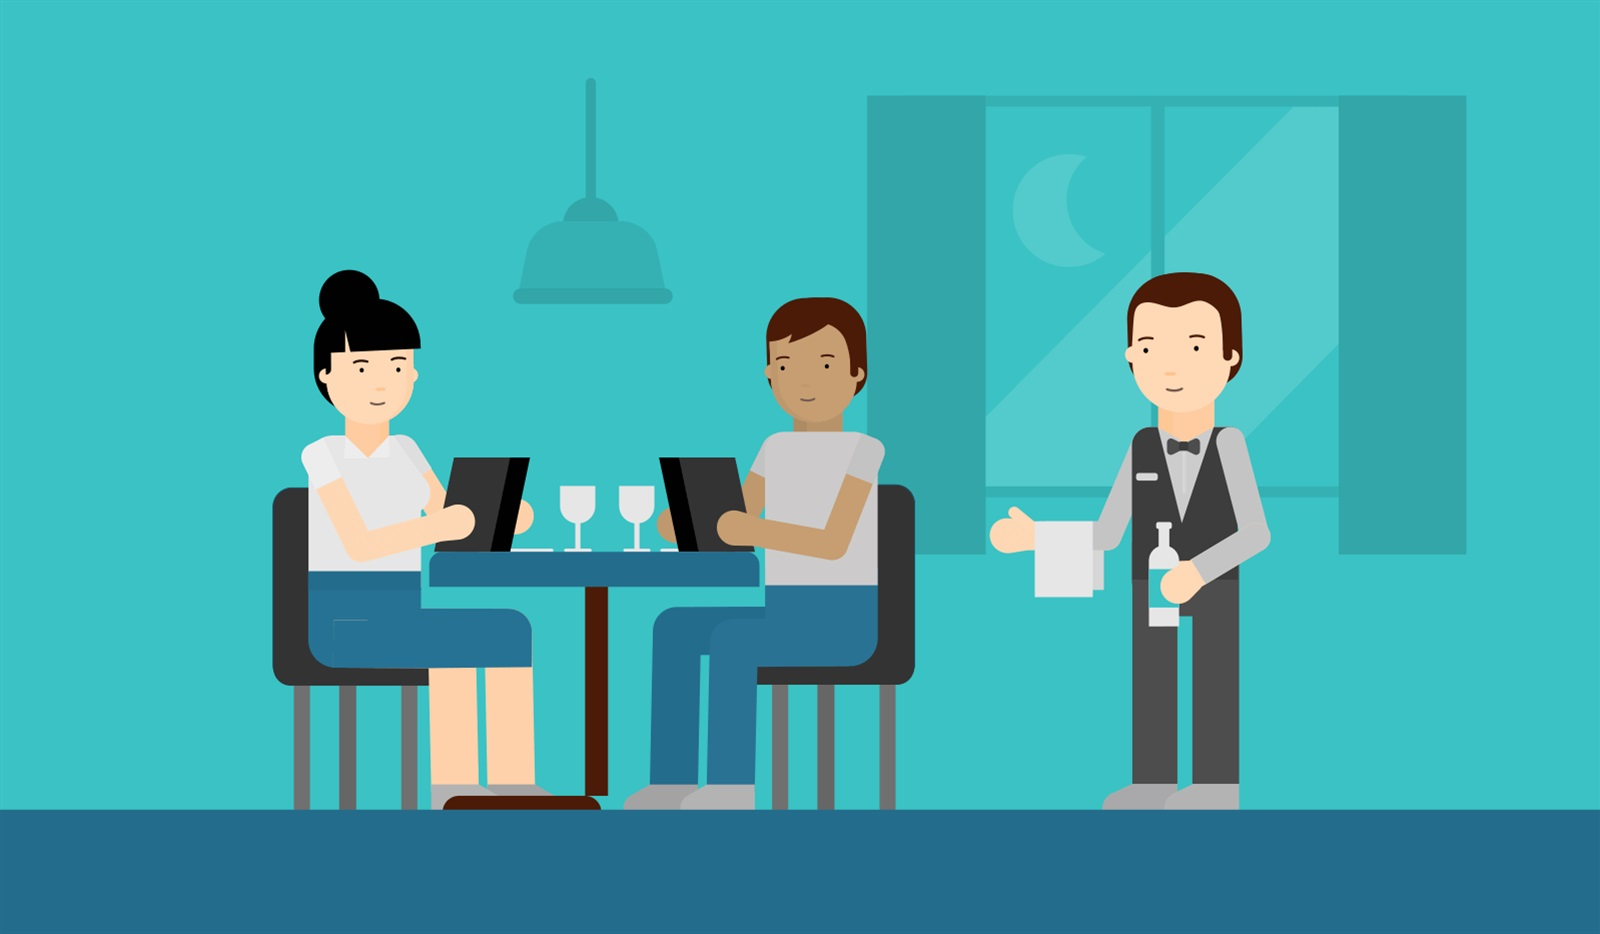 Tips for Finding and Hiring the Best Student Employees